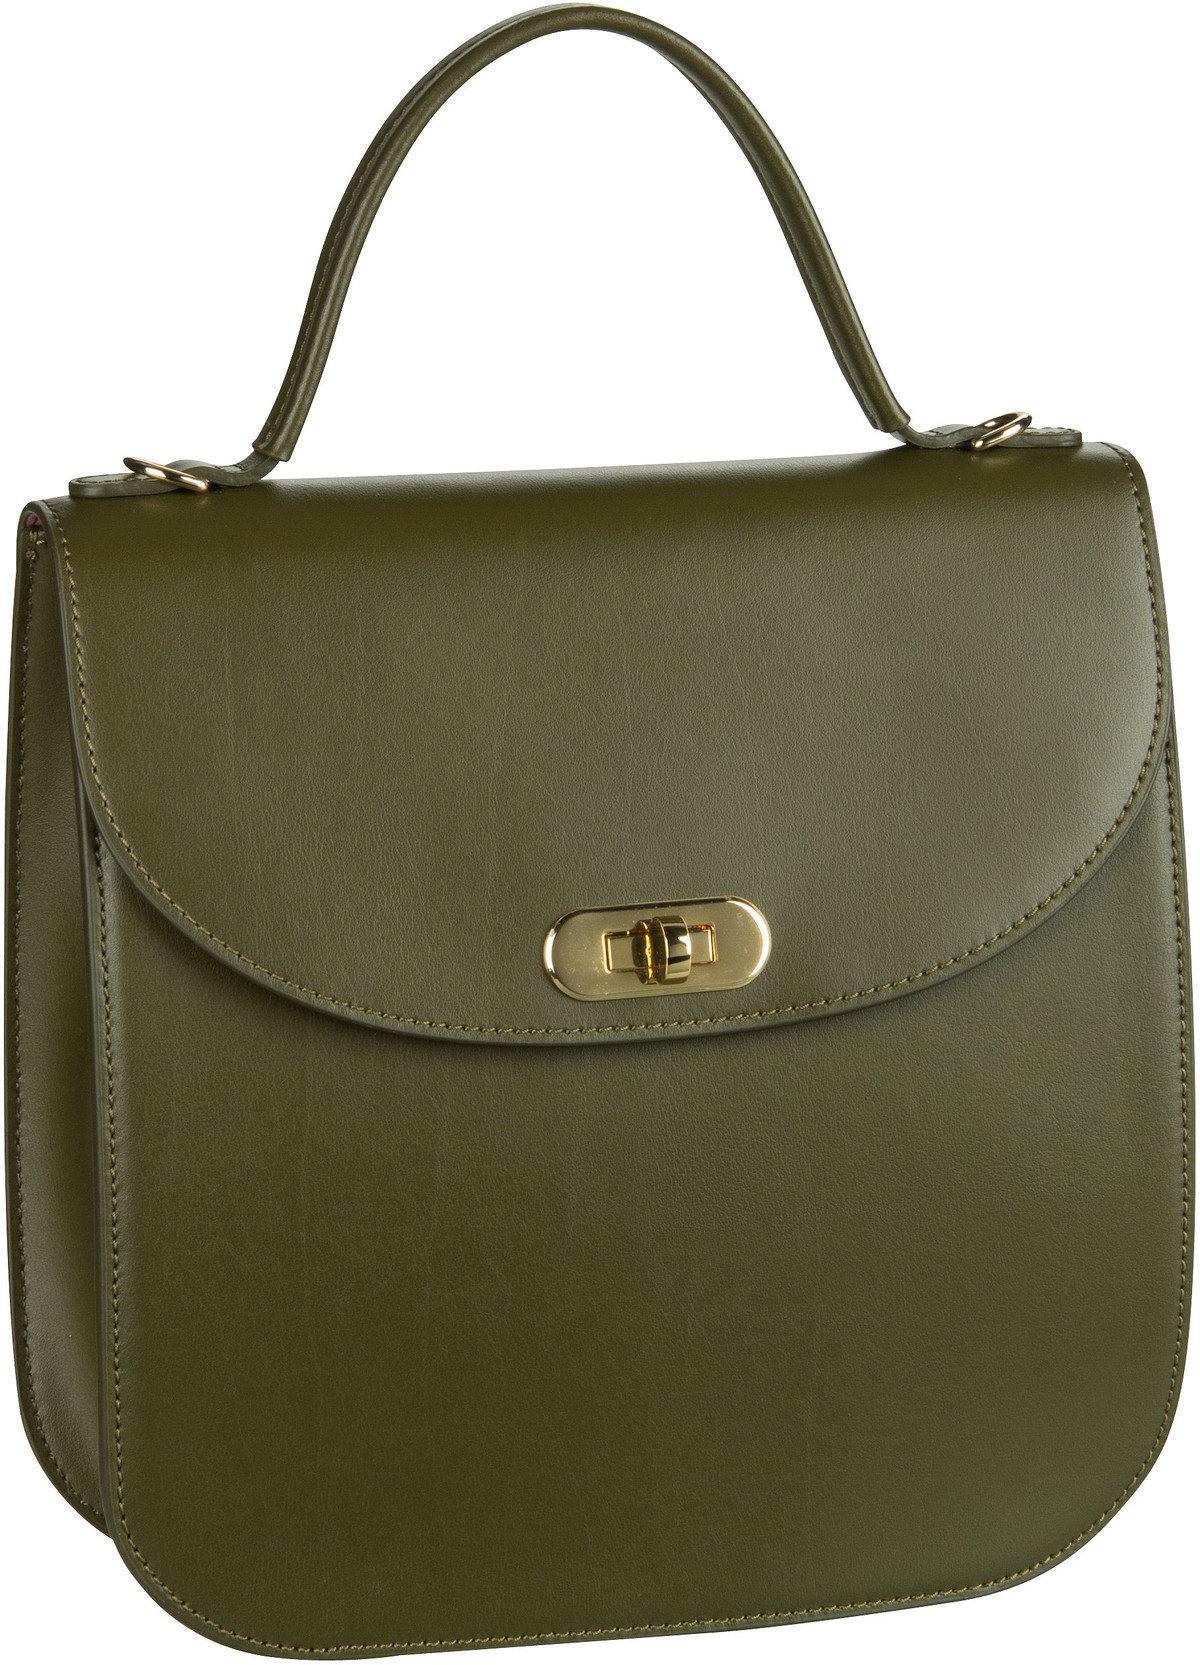 Handtasche Greez 1801 Evergreen